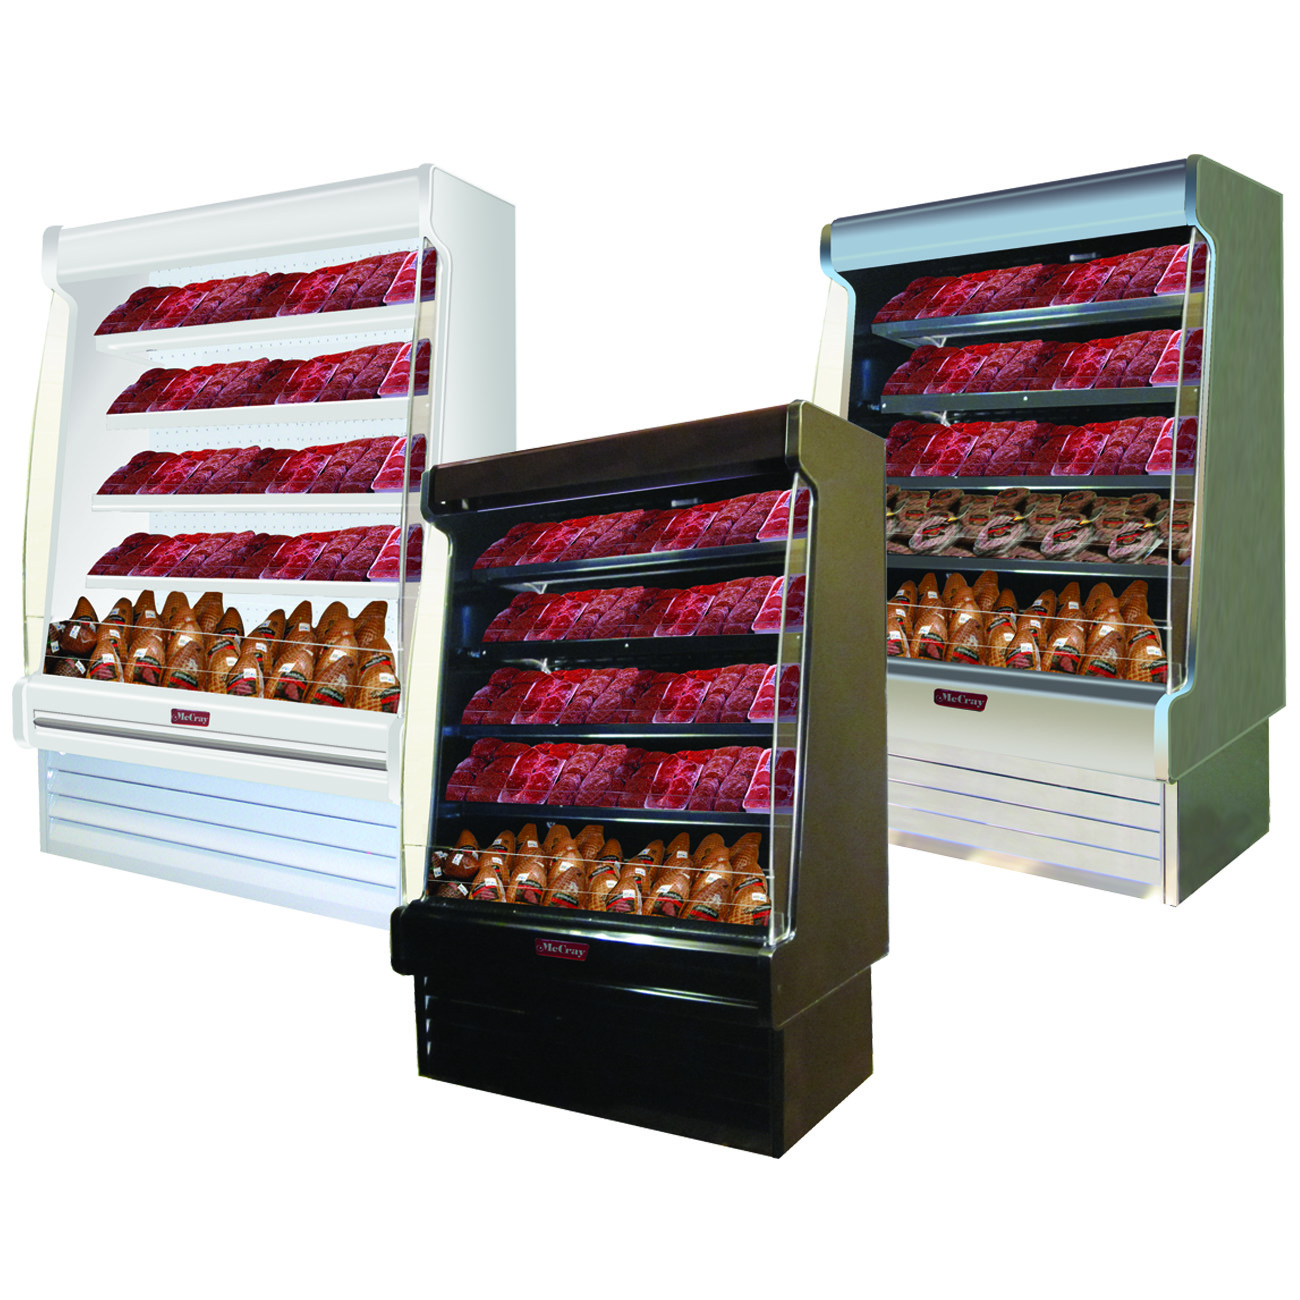 Howard-McCray SC-OM35E-4S-B-LED merchandiser, open refrigerated display